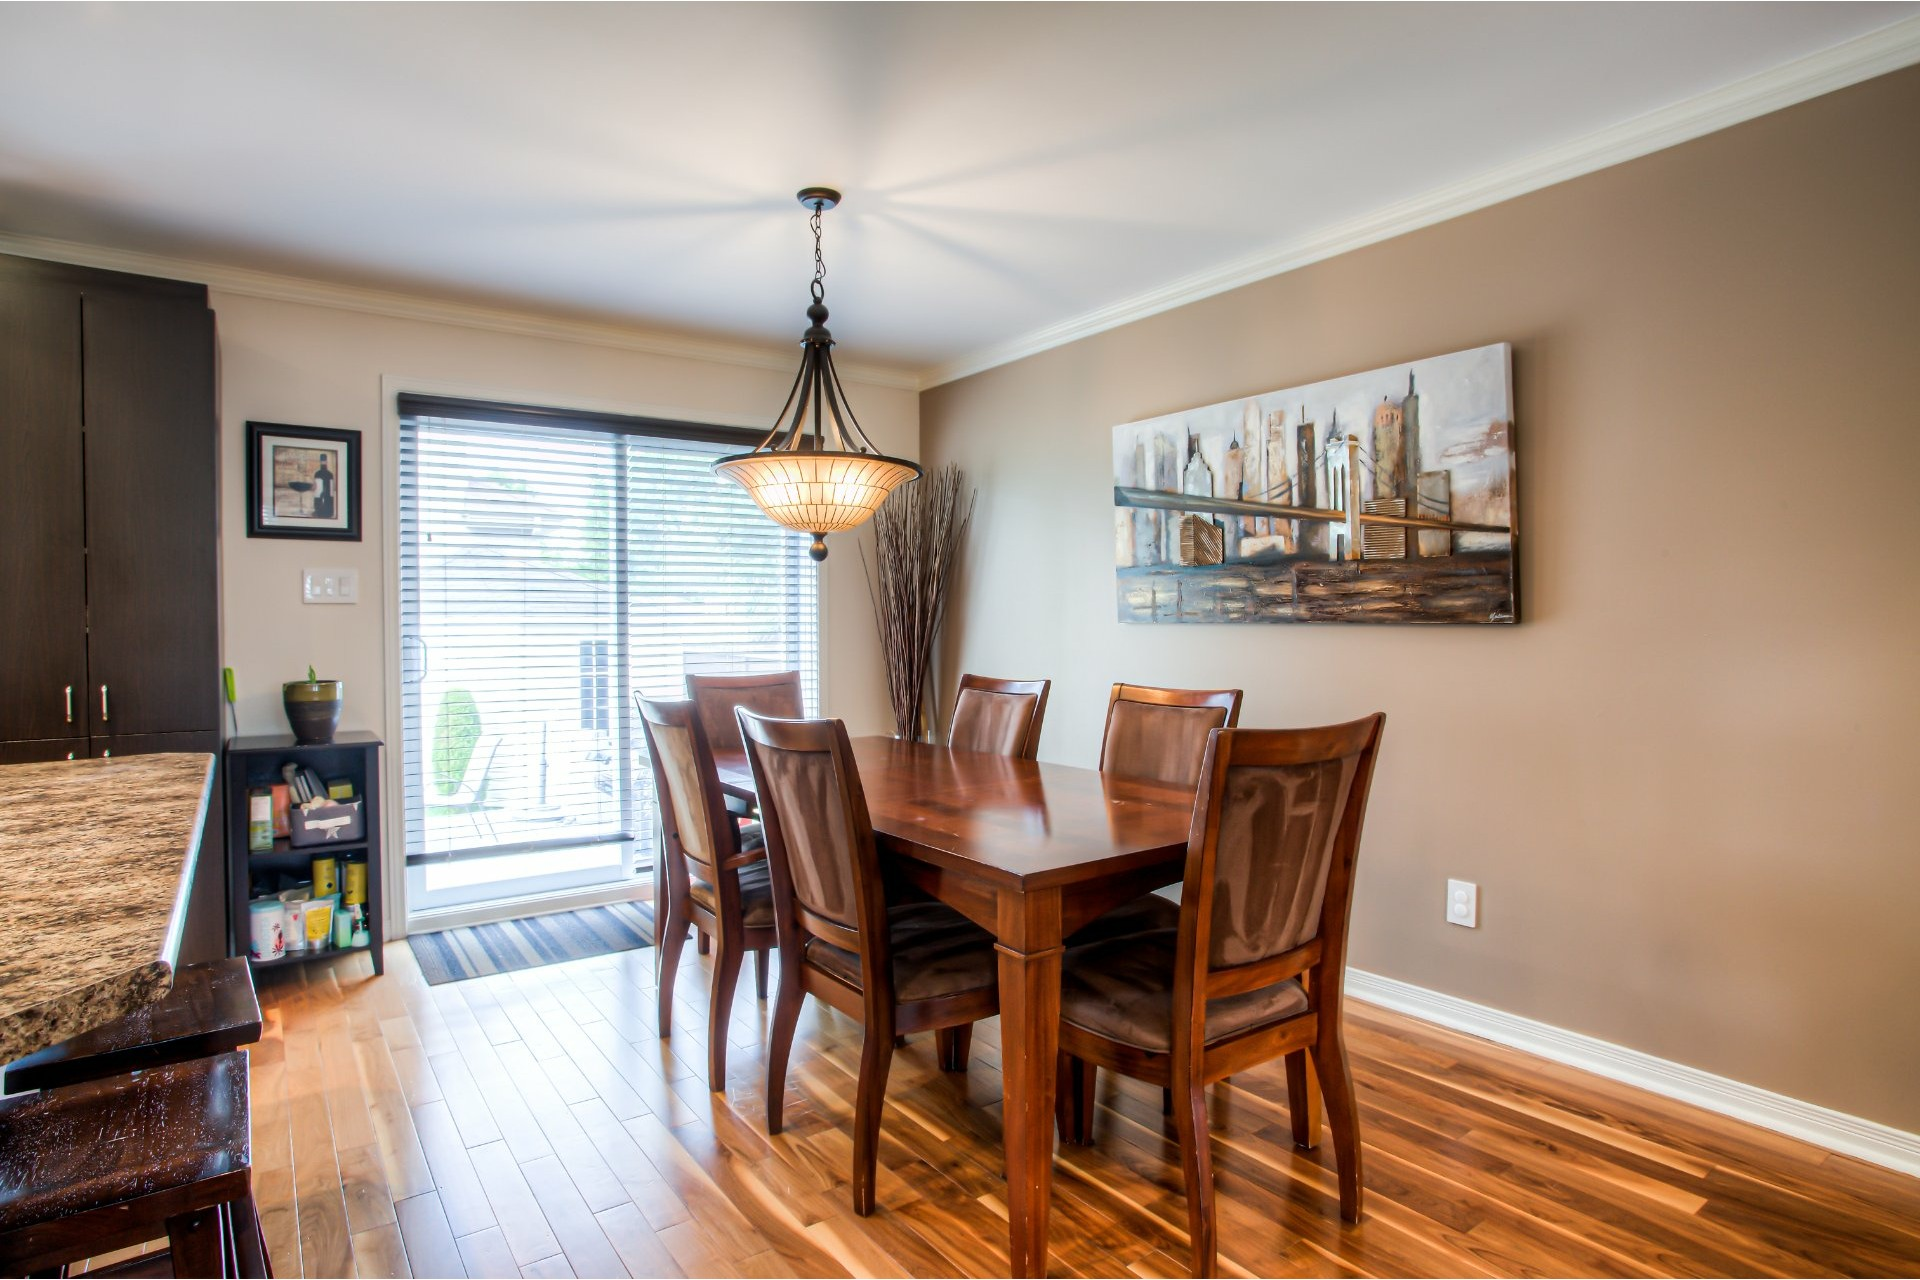 image 8 - House For sale Vaudreuil-Dorion - 9 rooms